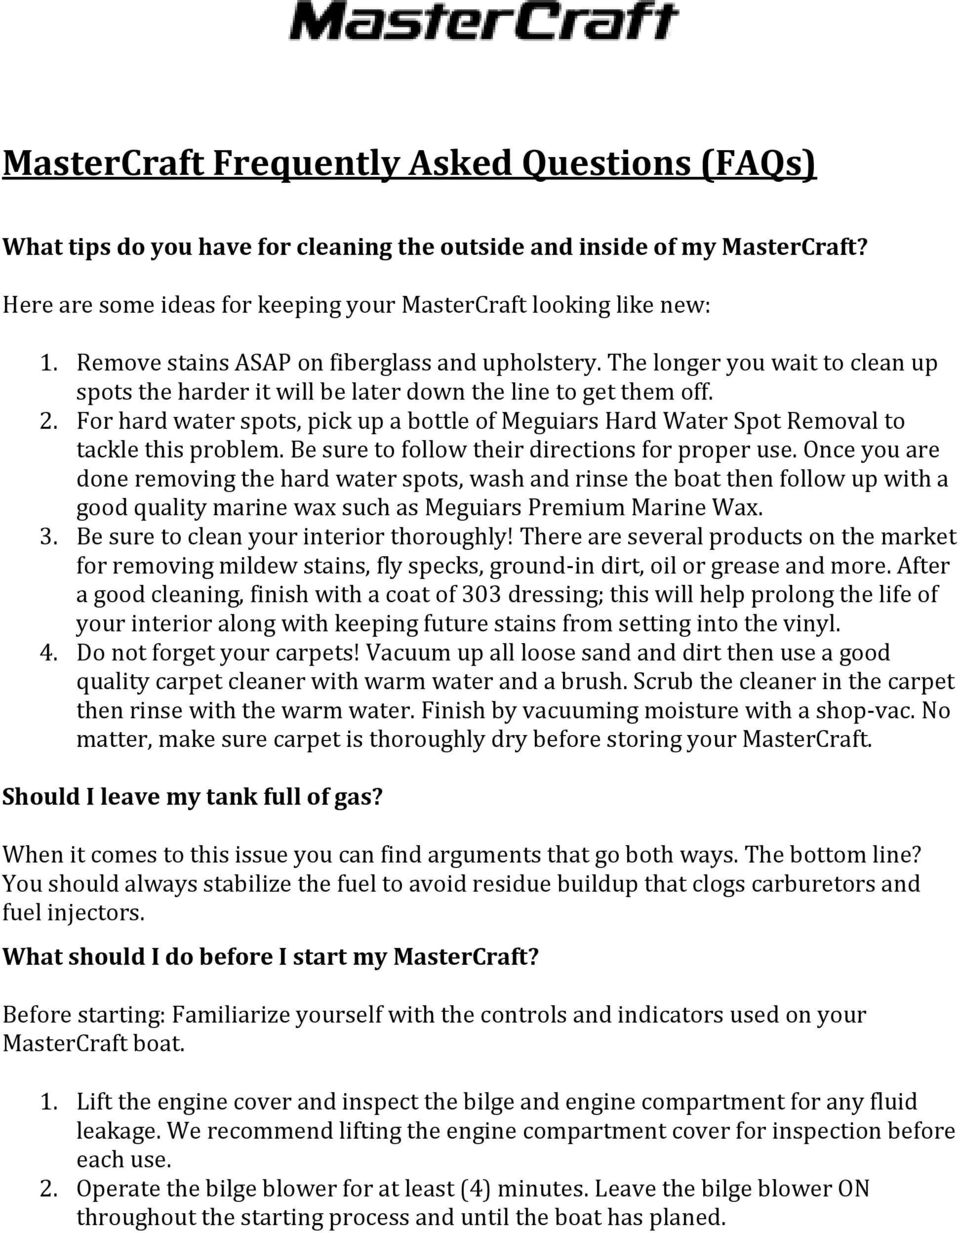 Mastercraft Frequently Asked Questions Faqs Pdf Boat Wiring Diagram For Hard Water Spots Pick Up A Bottle Of Meguiars Spot Removal To